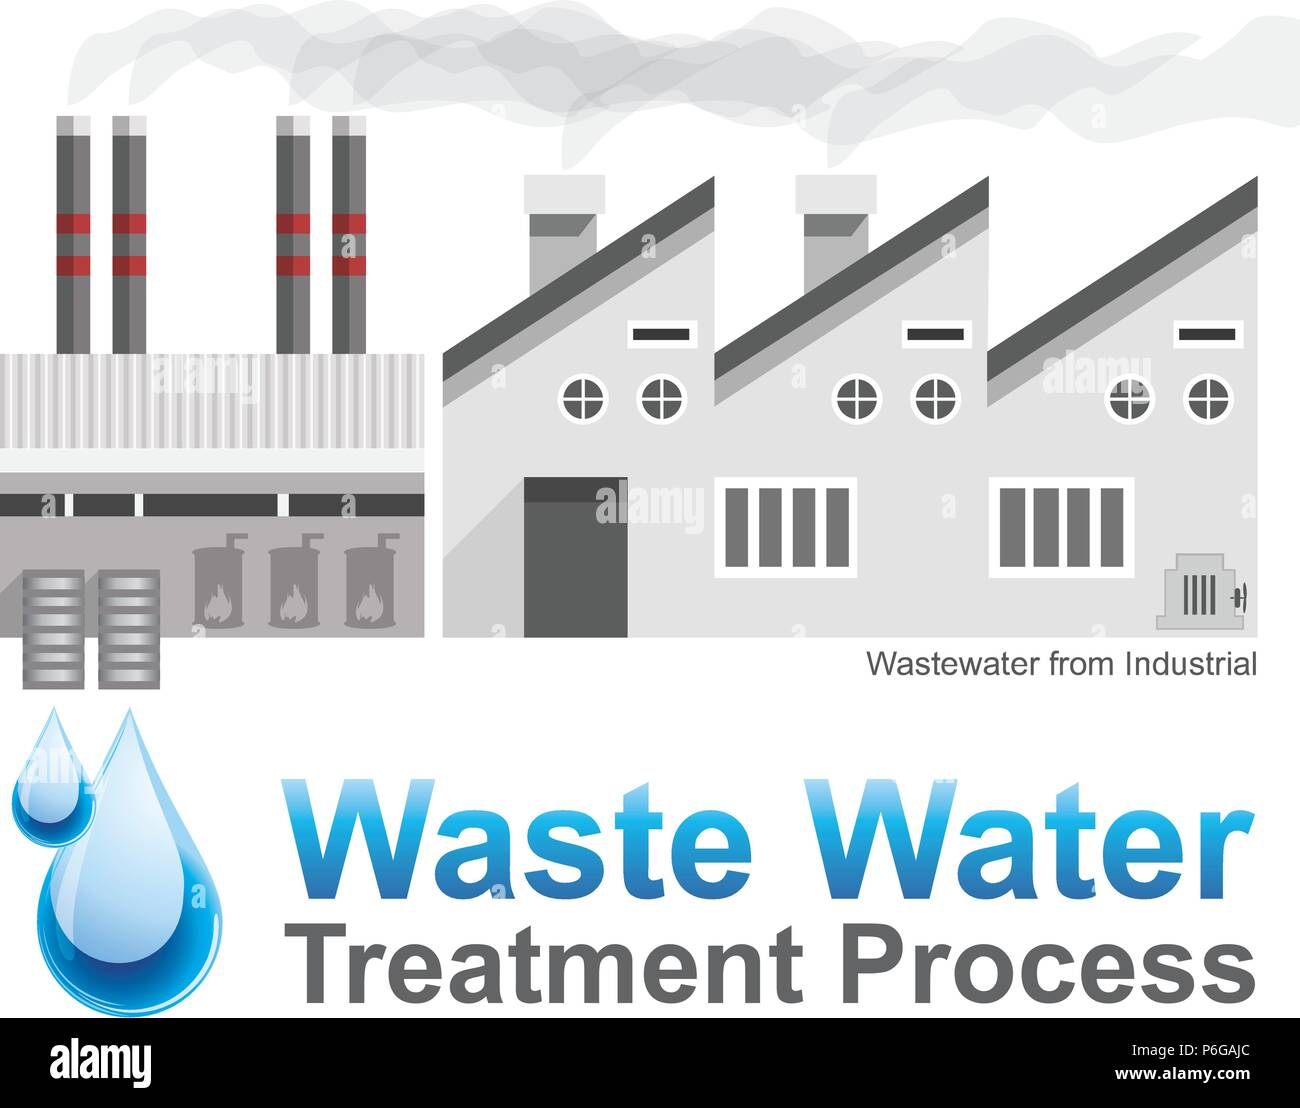 Wastewater treatment is a process used to convert wastewater which is water no longer needed or suitable for its most recent use into an effluent that - Stock Image